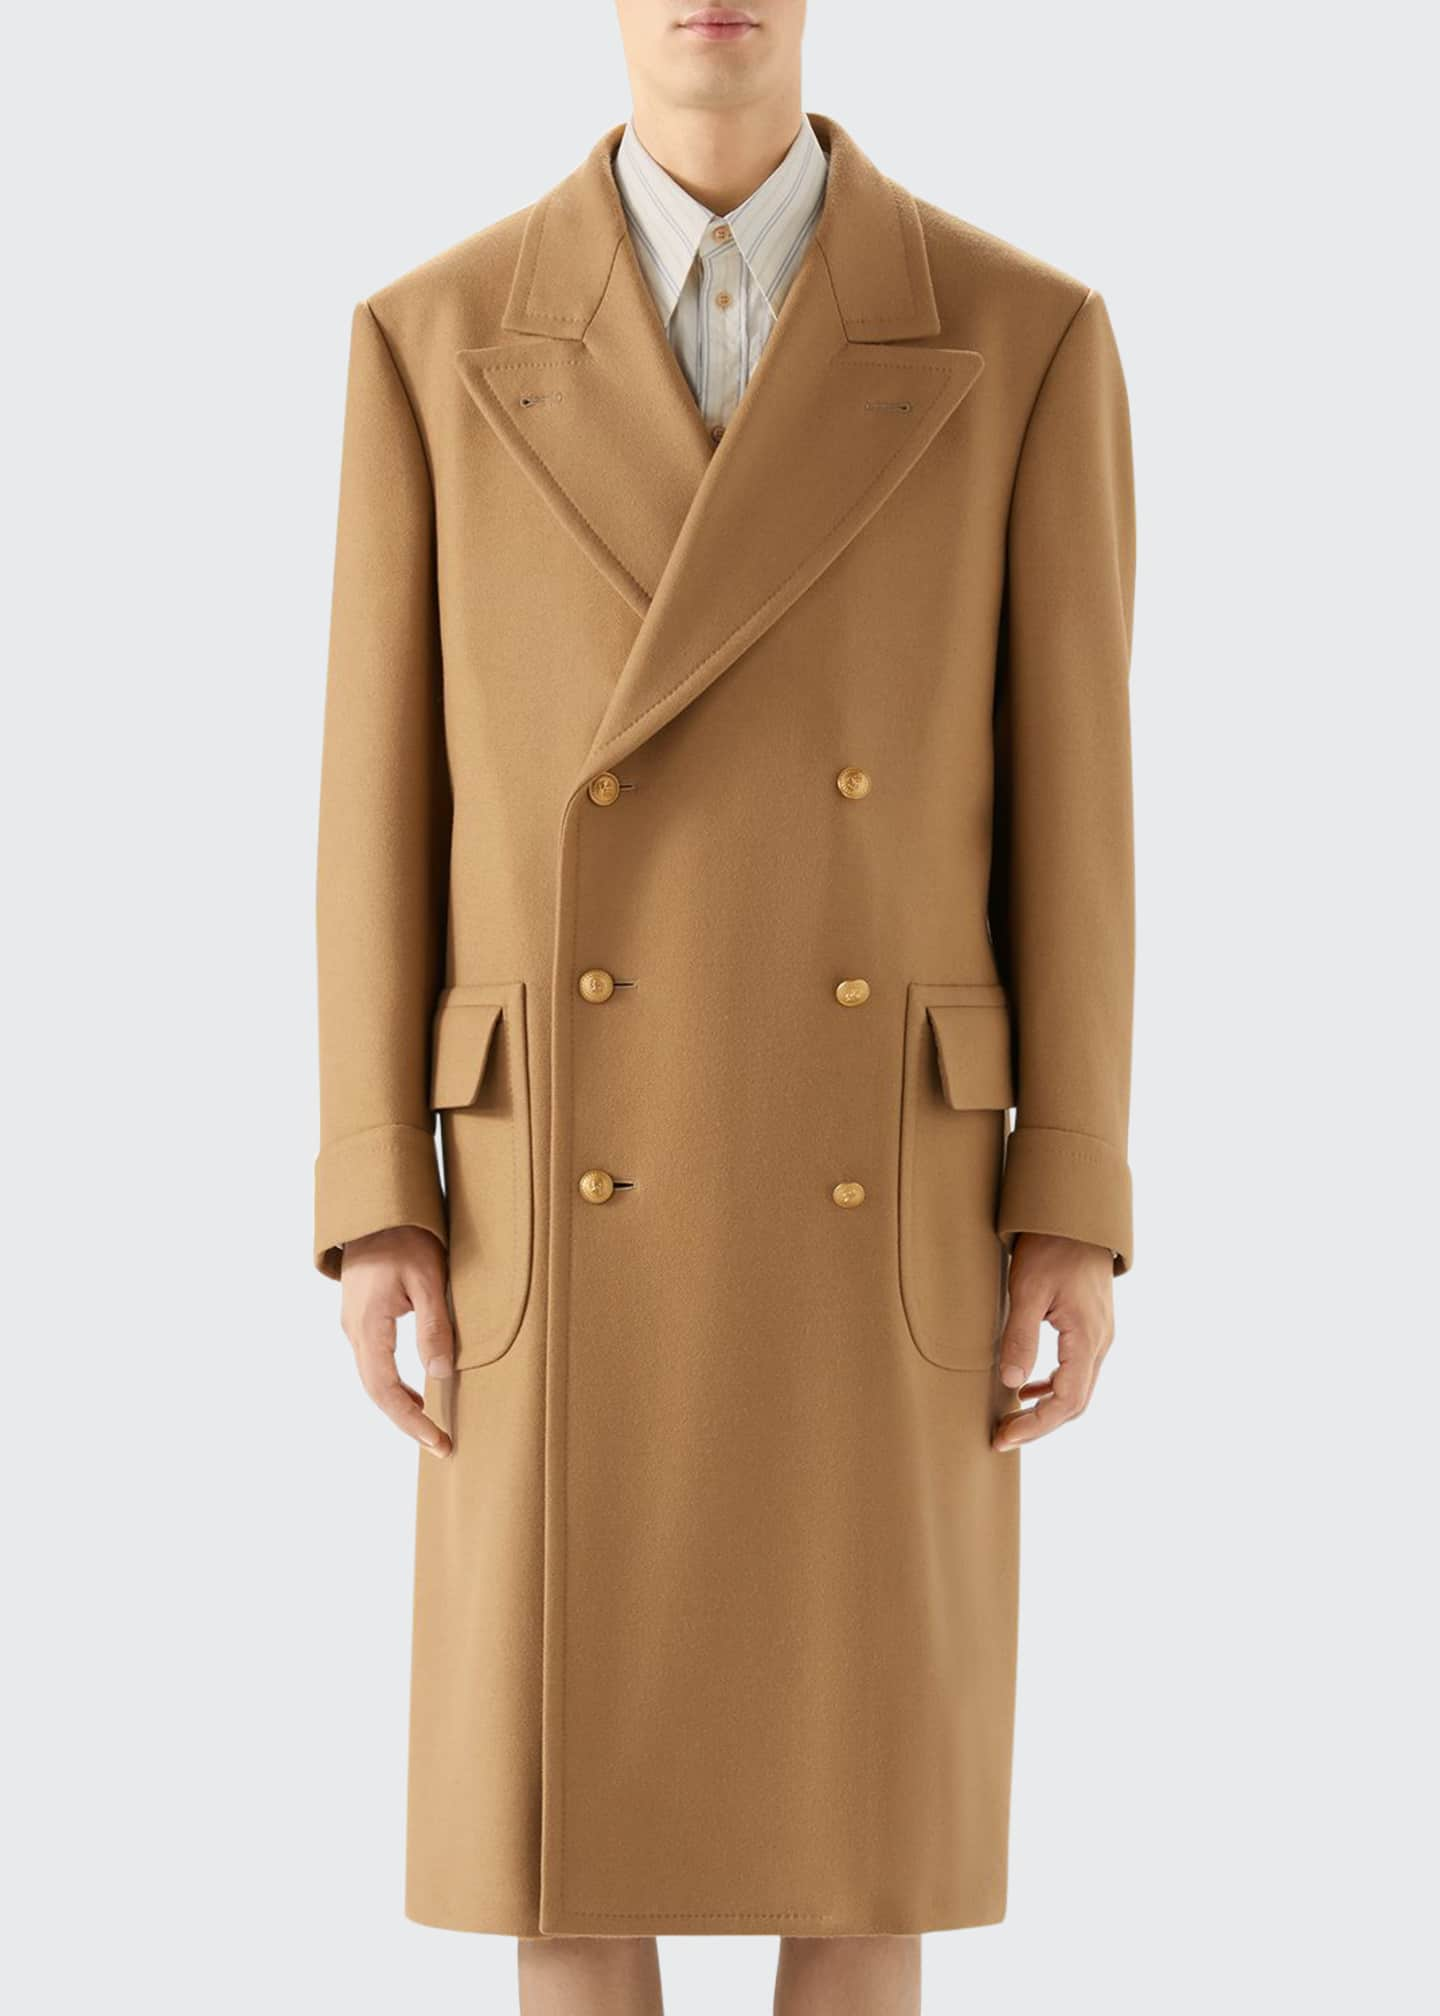 Gucci Men's Double-Breasted Camel Coat